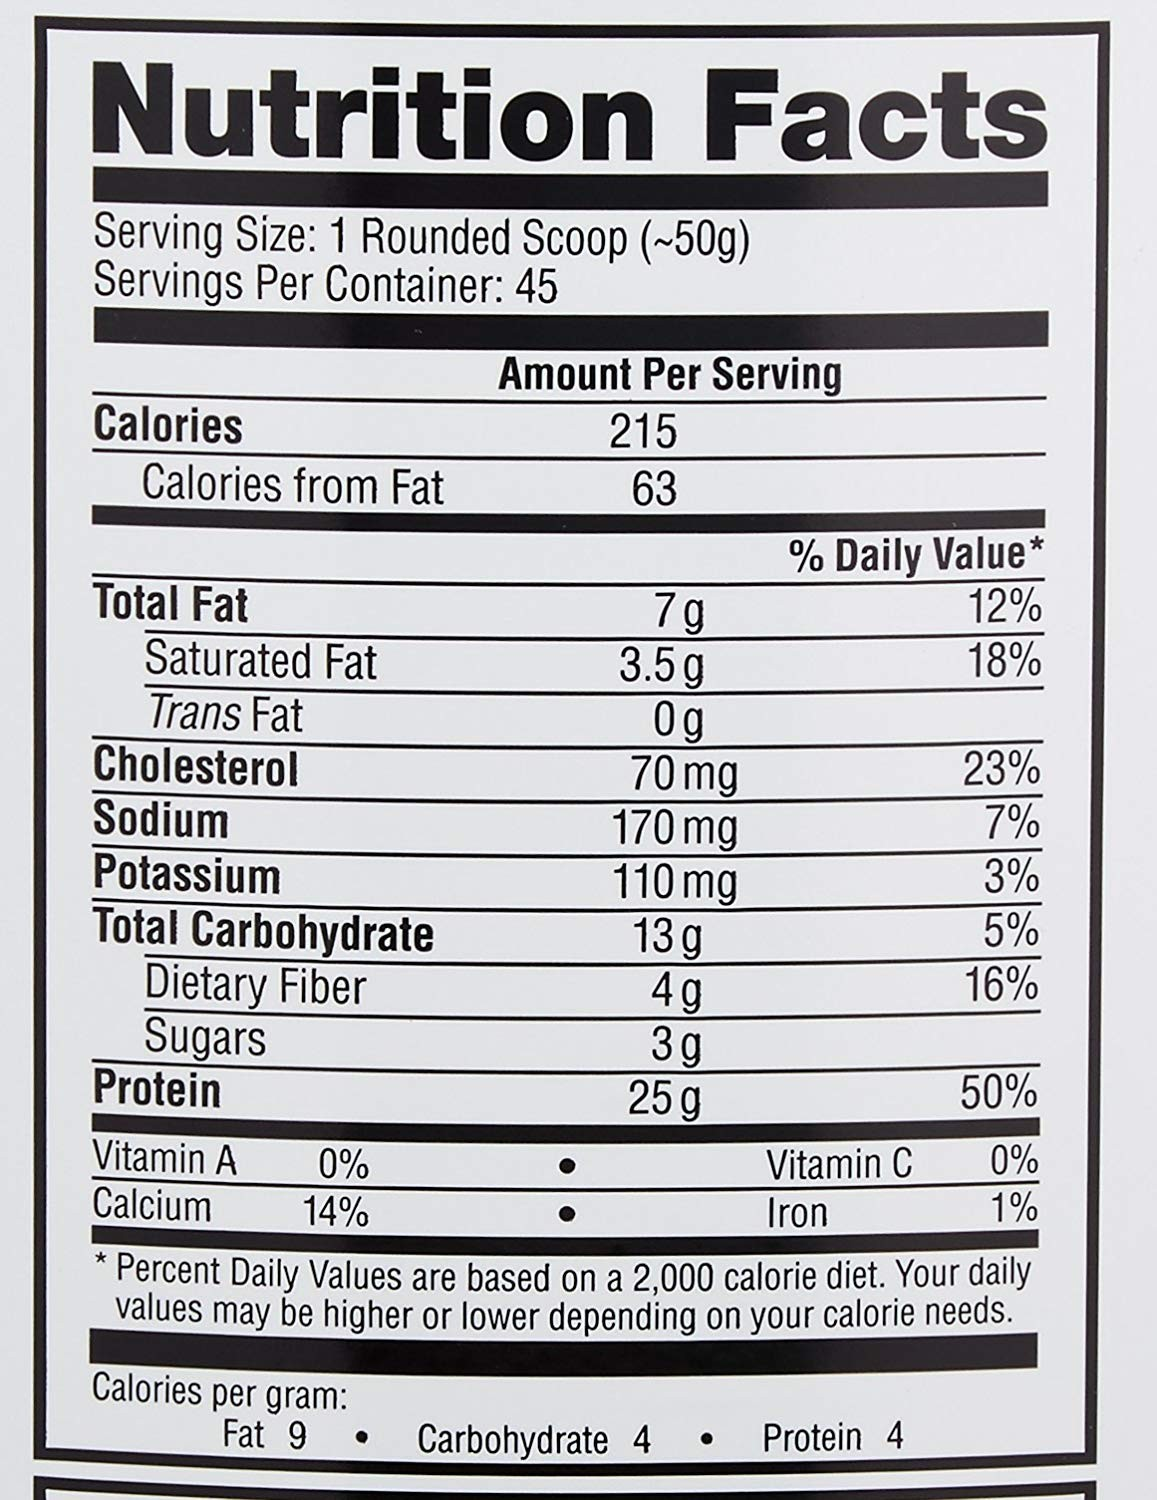 Leanpro-8-nutrition-facts-gymstore-1